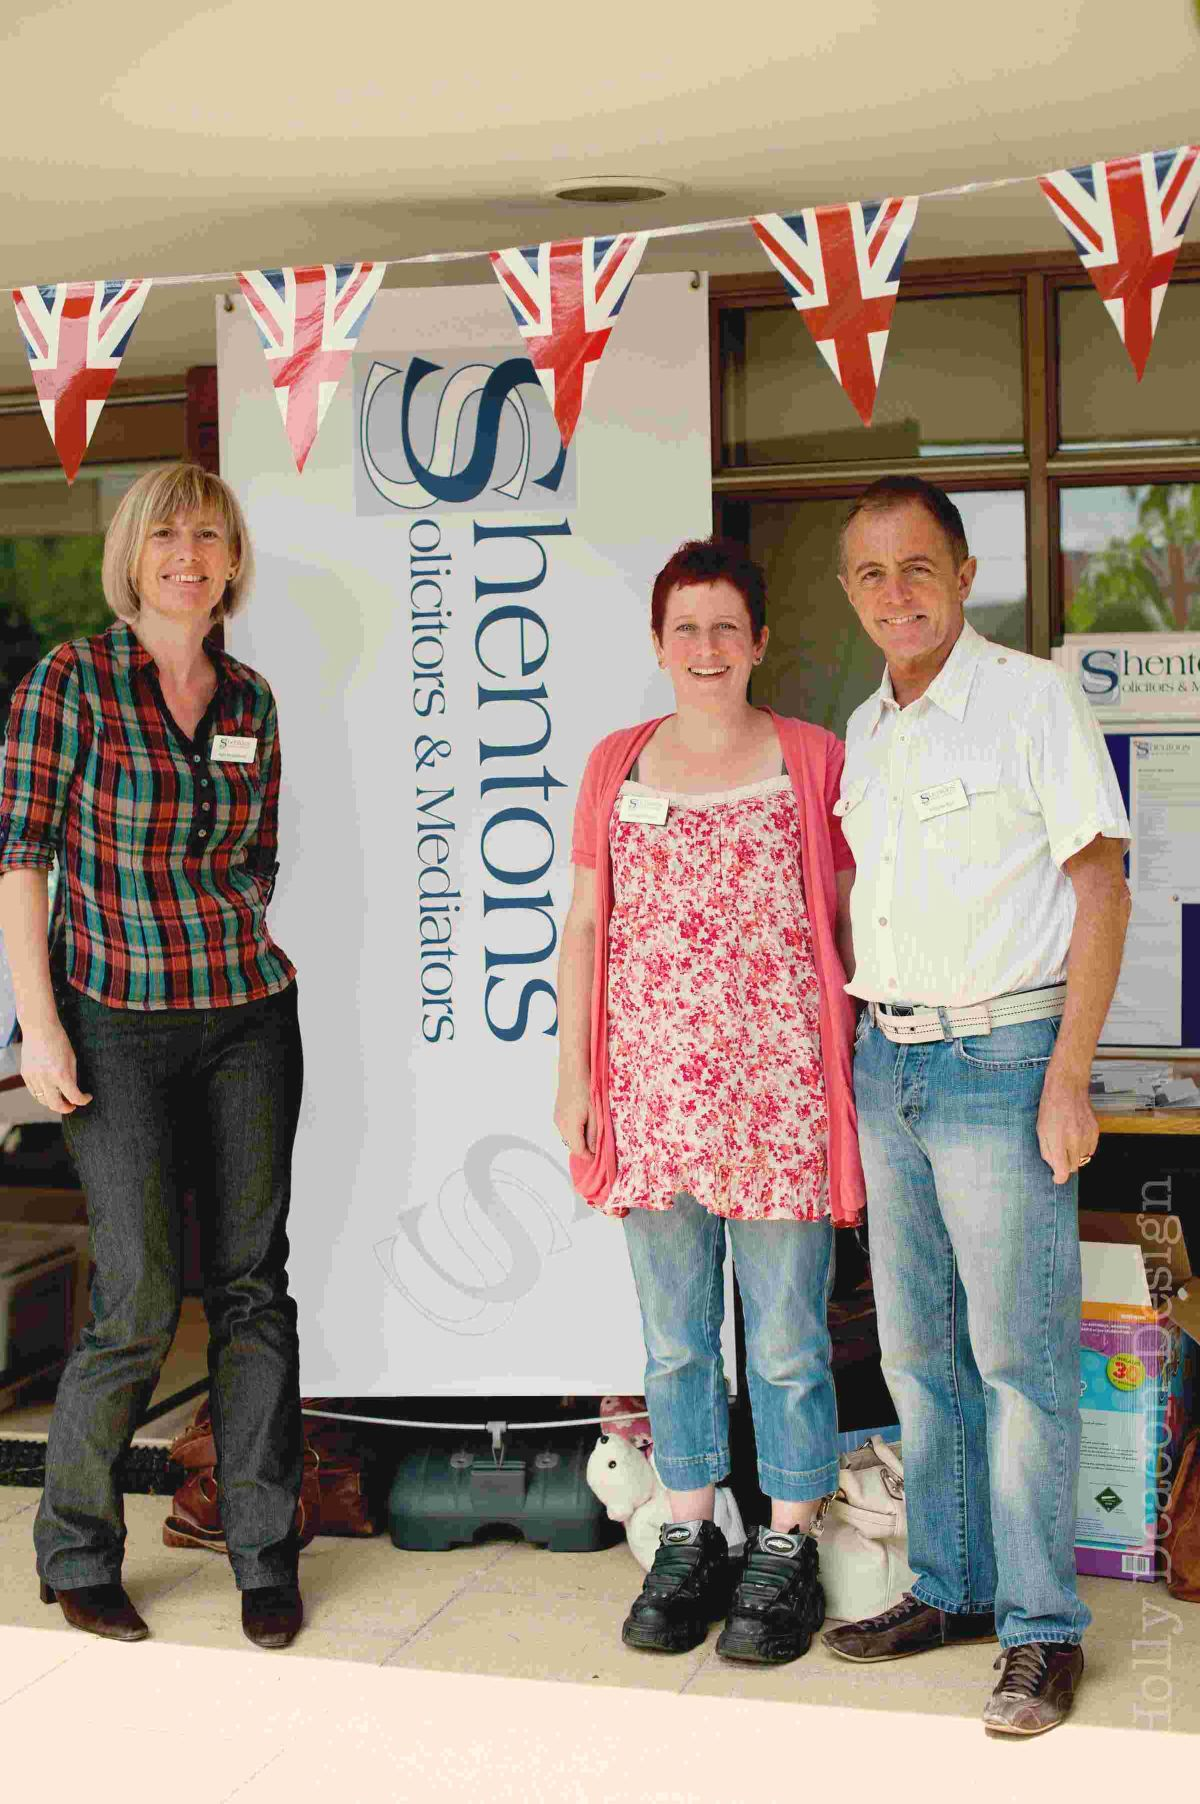 The team from Shentons Solicitors and Mediators at the event in 2012. L to R: Kate Mottershead, Elisabeth Pollard, Nicholas Bell. Credit: Holly Deacon Design)